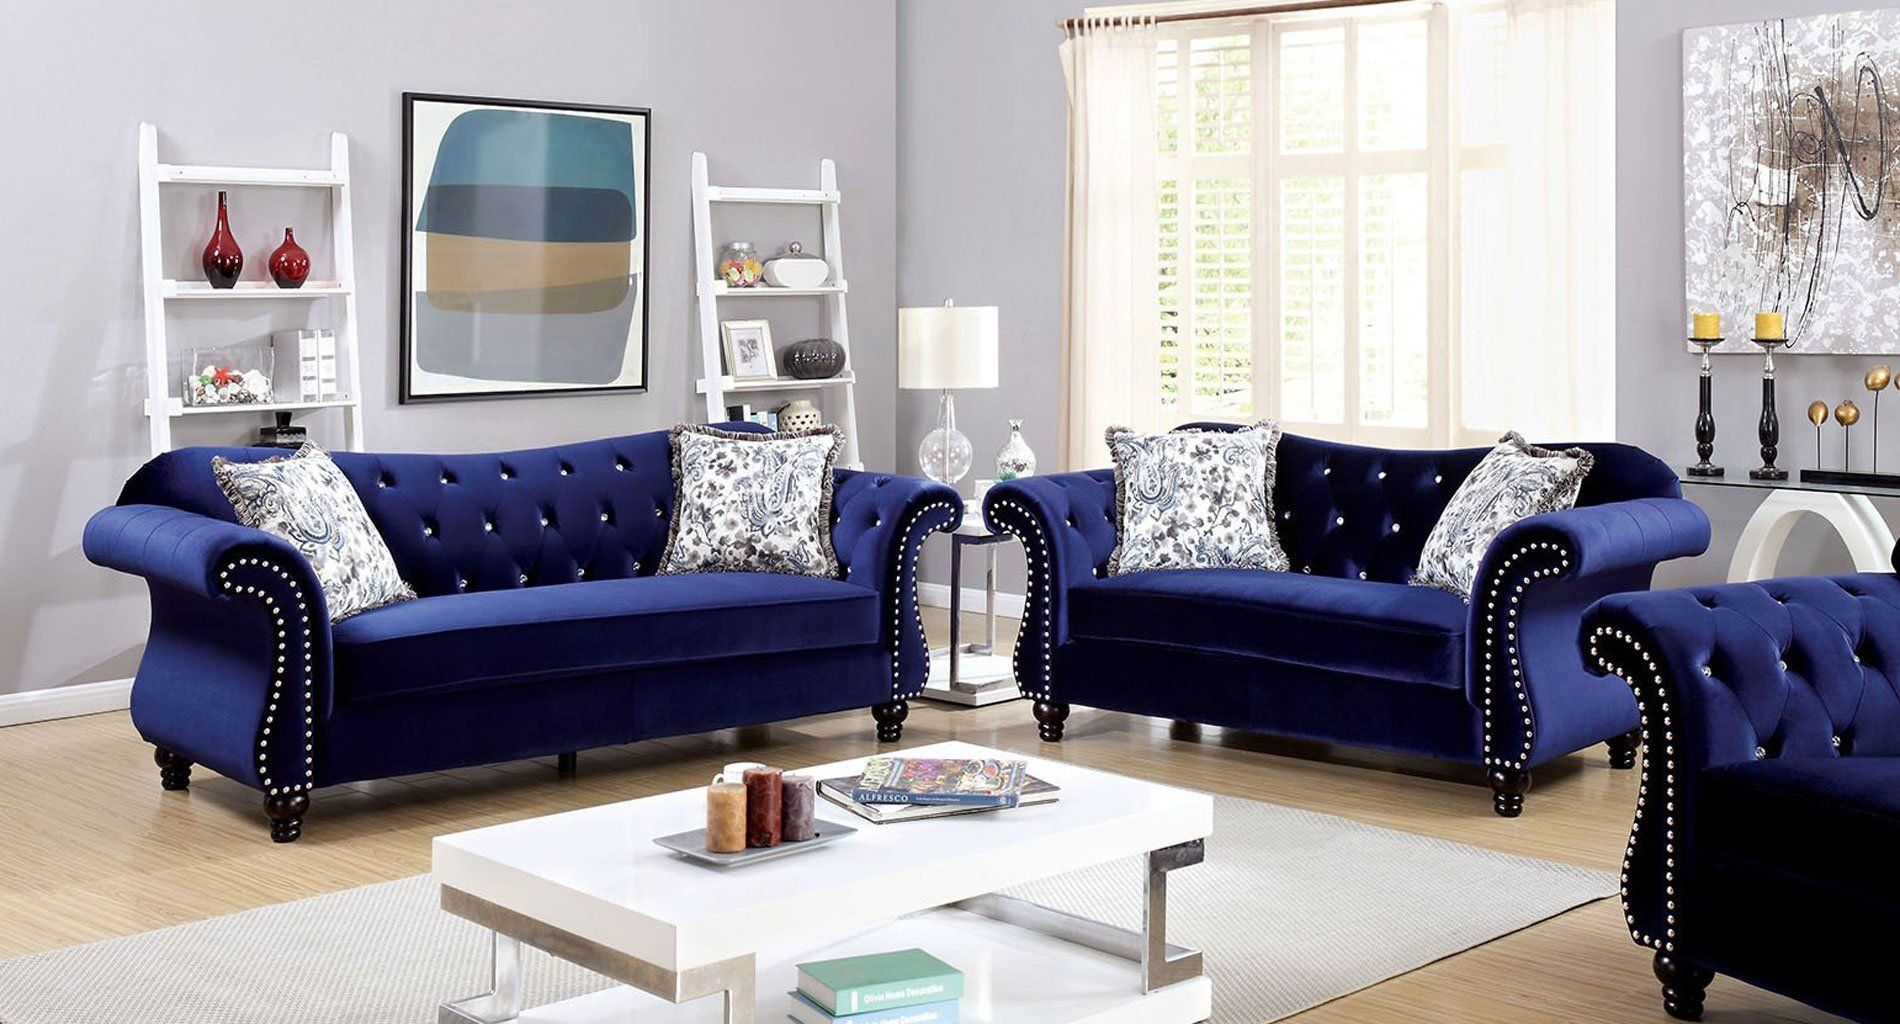 Jolanda Living Room Set Blue Blue Living Room Decor Blue Furniture Living Room Blue Sofa Living